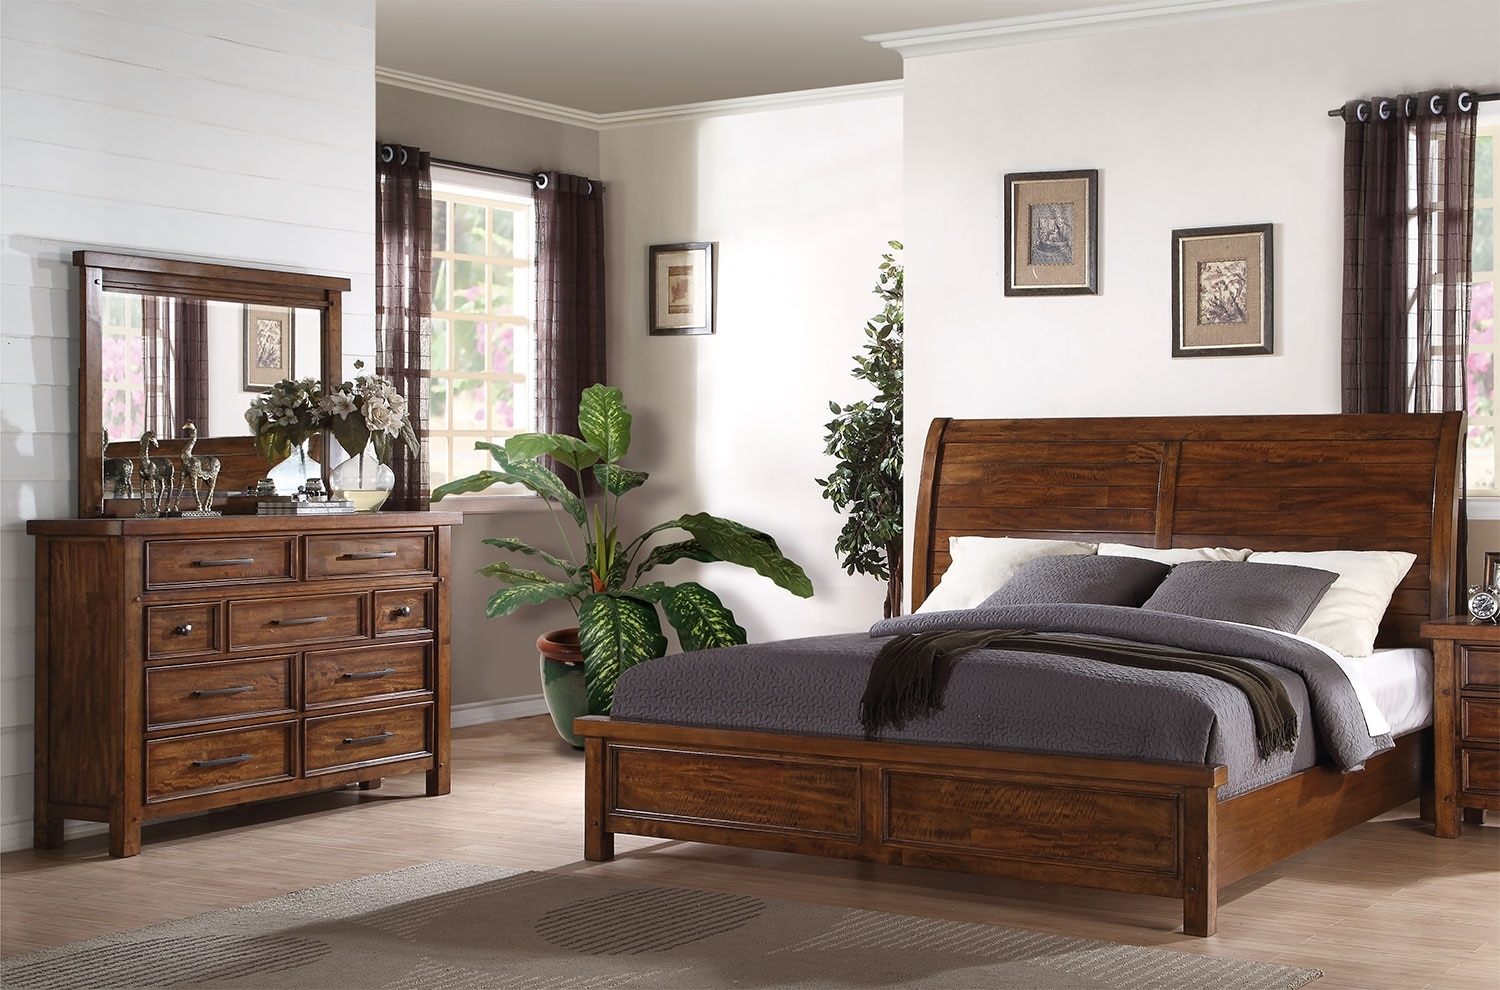 Sonoma 5-Piece Queen Bedroom Package – Medium Brown